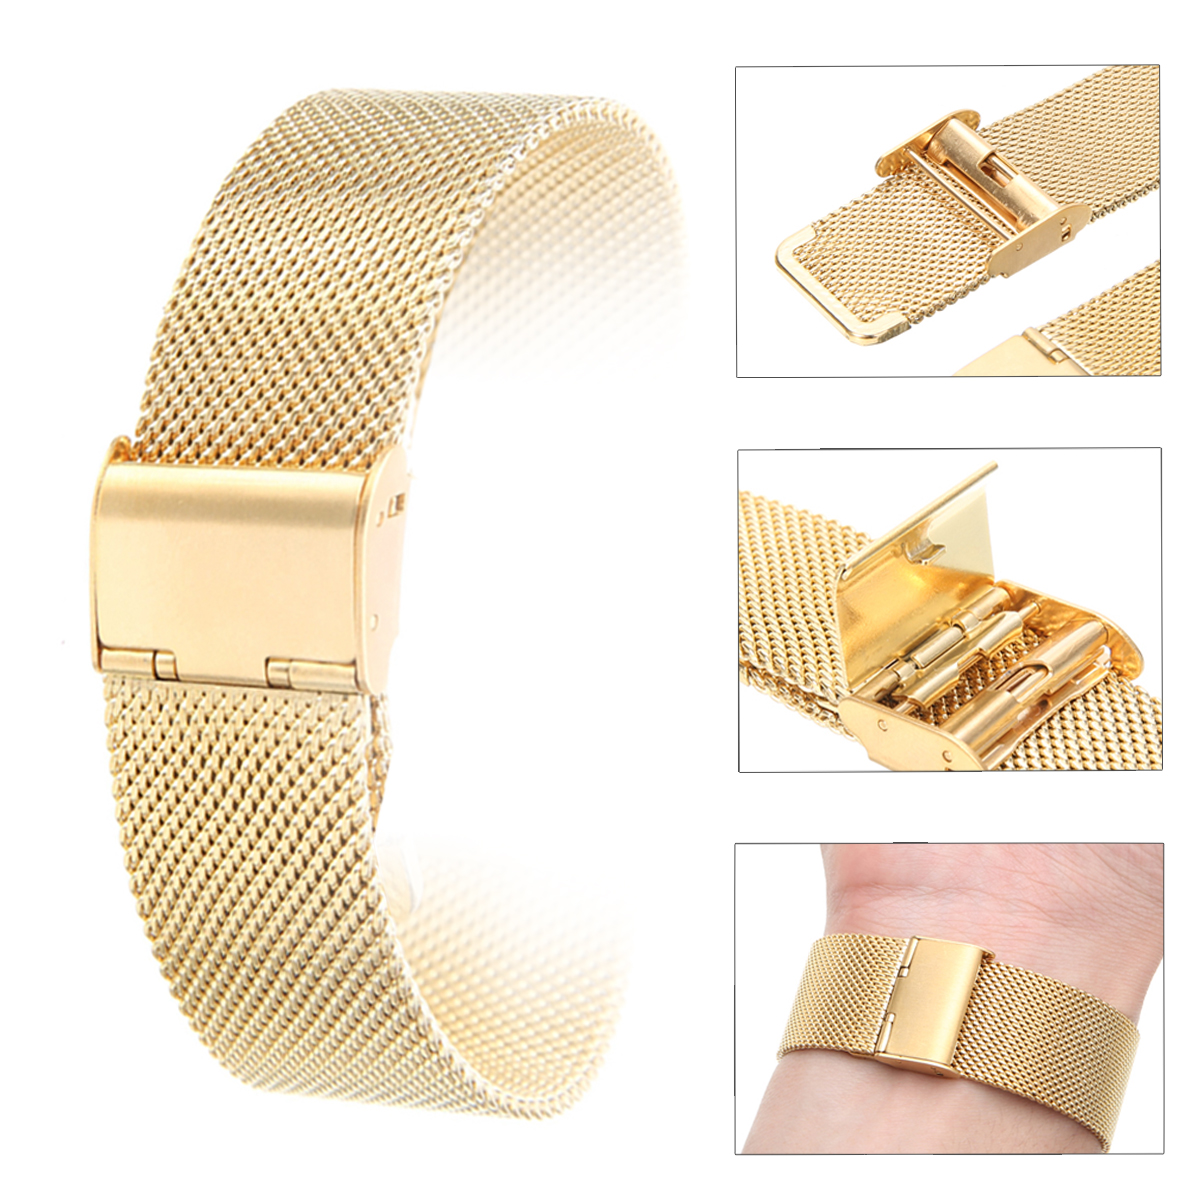 12mm/14mm/16mm/18mm/20mm/22mm/24mm Stainless Steel Watch Strap Straight End Bracelet Mesh Buckle Watch Band 4 Colors Shellhard